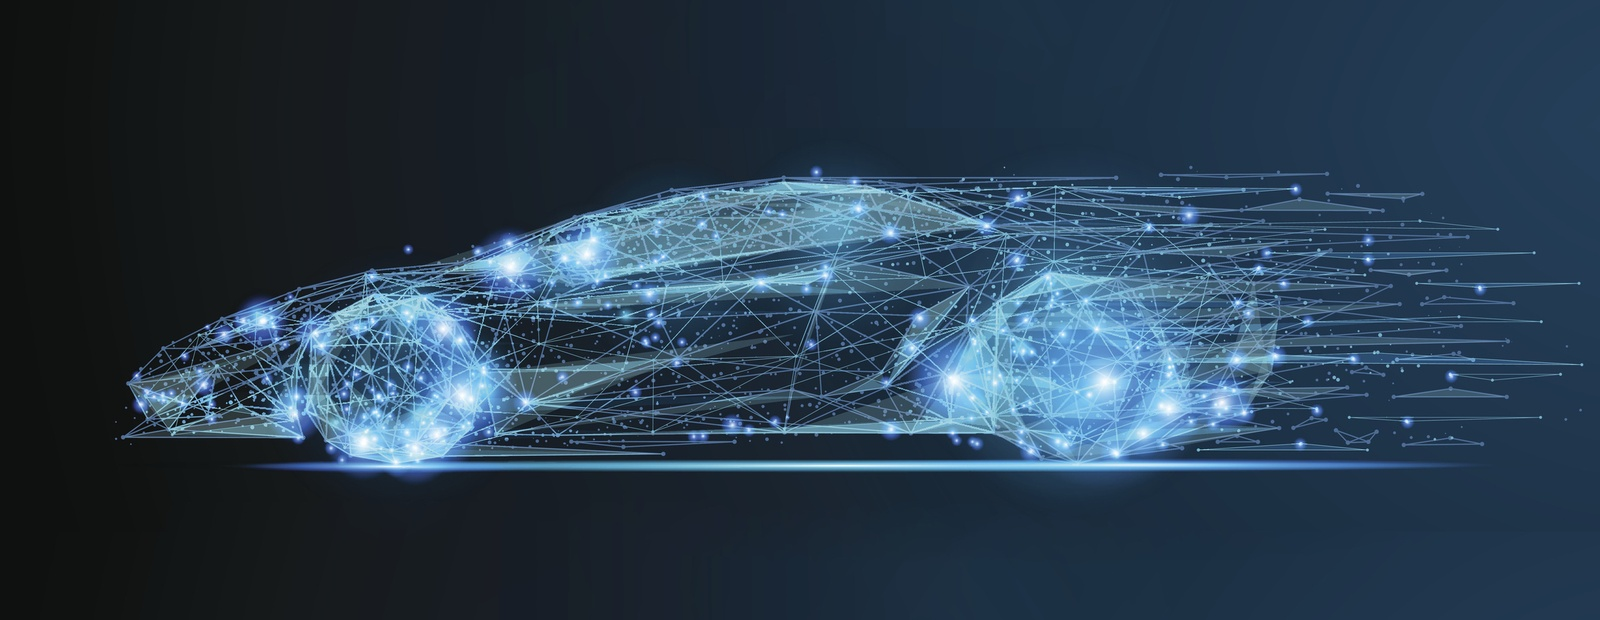 THE FUTURE OF AUTONOMOUS VEHICLES AND SENSOR TECHNOLOGY DEPENDS ON FUNCTIONAL SAFETY